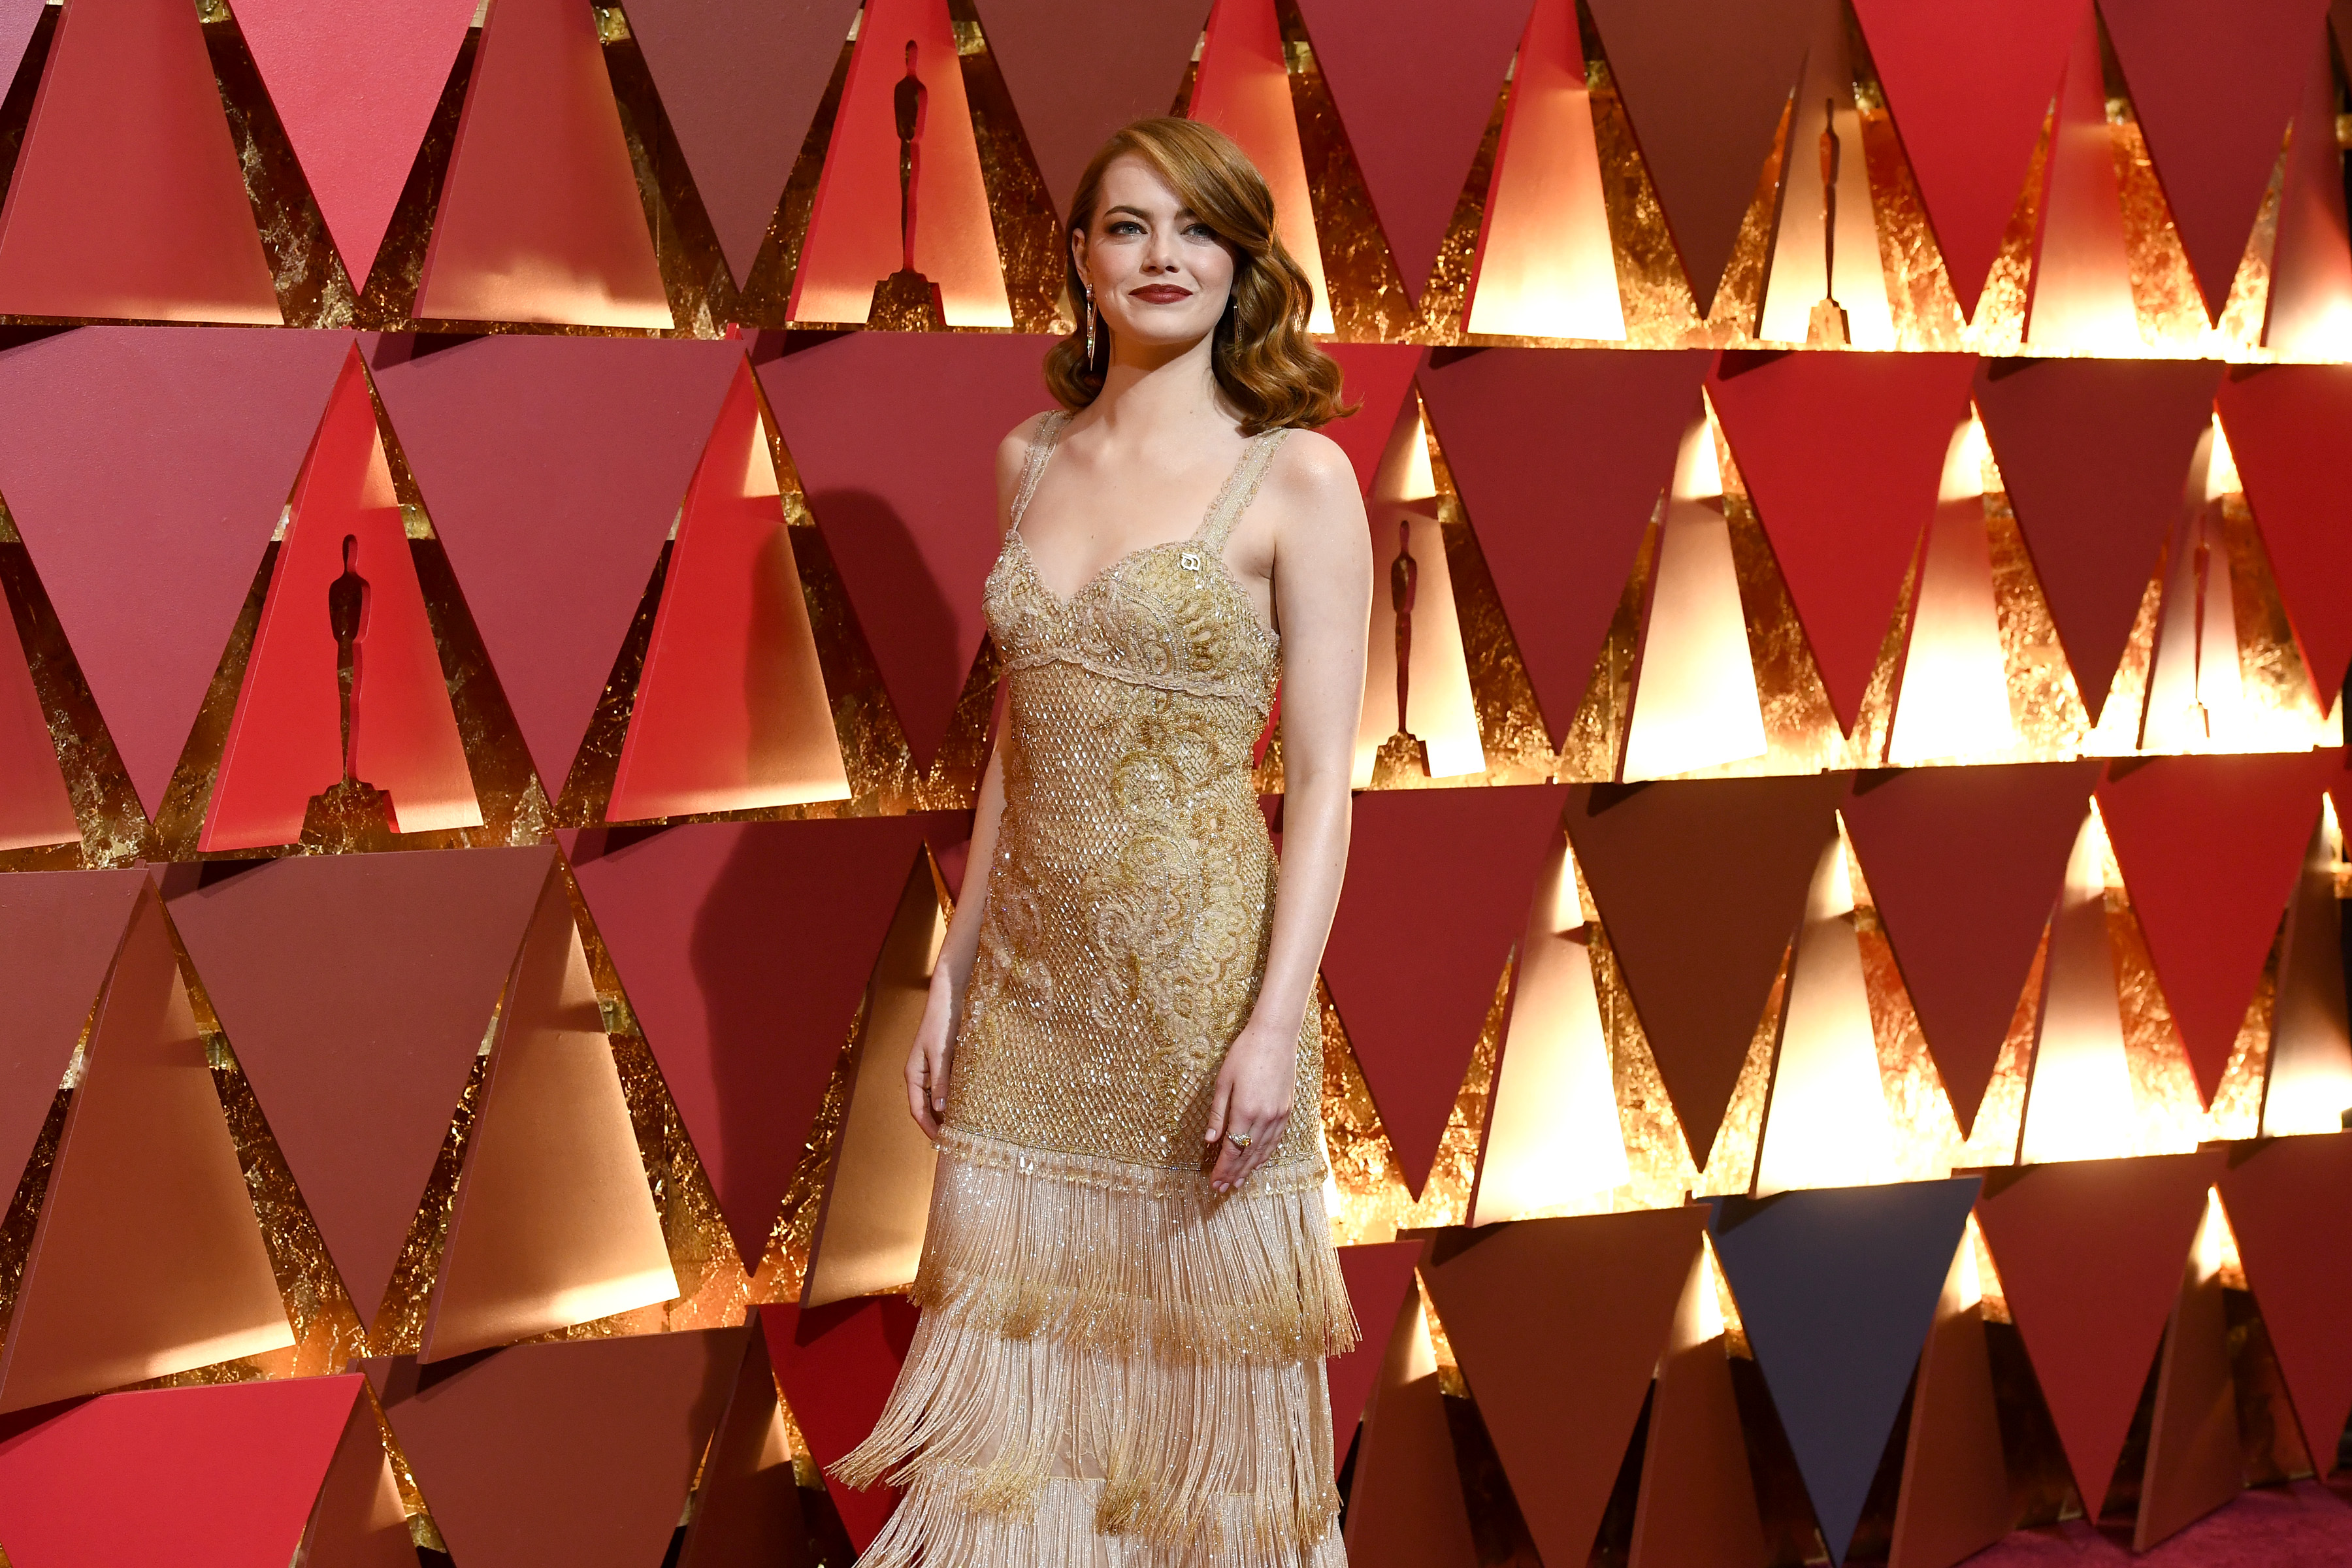 Emma Stone was one of several actresses who wore gold to the Oscars Sunday night. This one may top the list. (Getty Images)